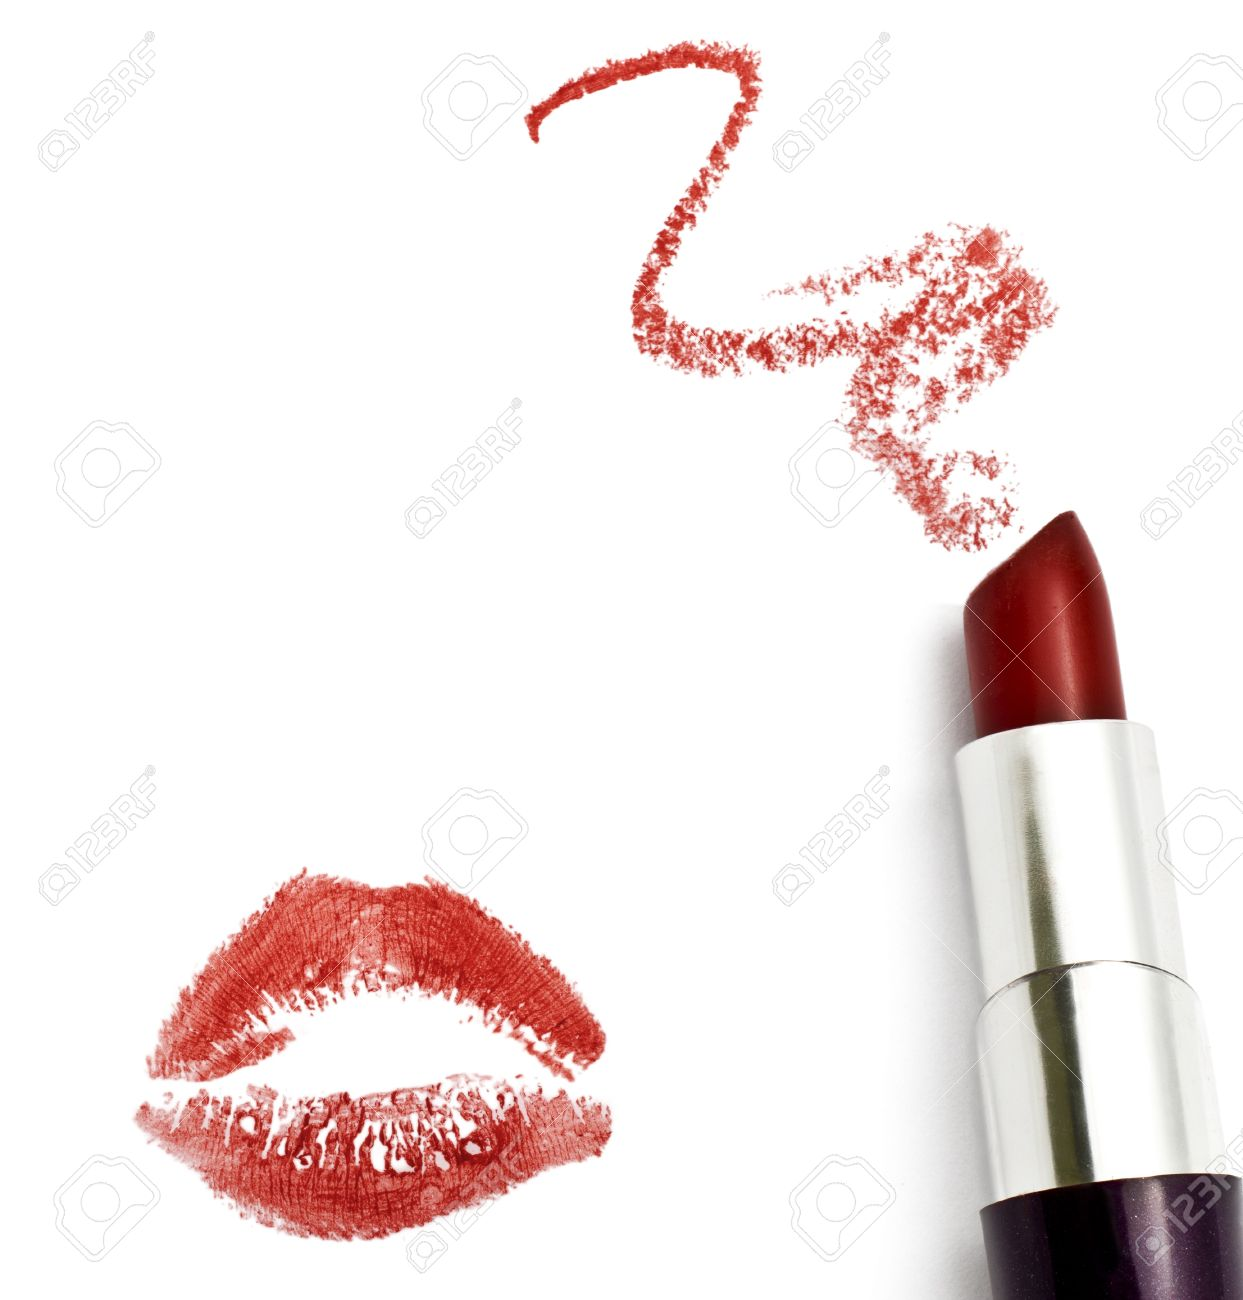 Red lipstick with a kiss on white background Stock Photo - 16243970